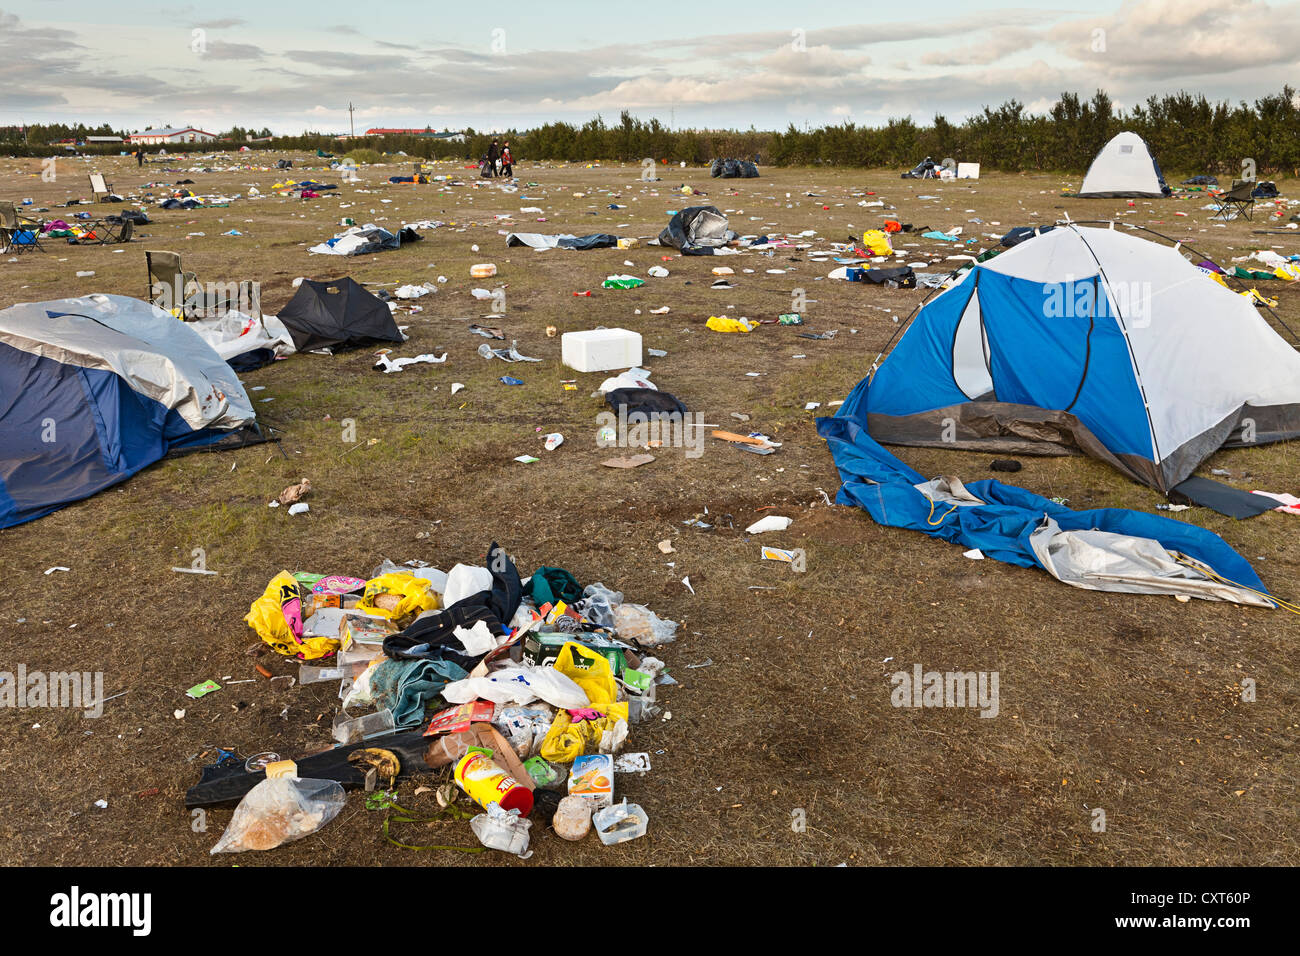 meadow full of garbage, waste, destroyed tents and broken camping